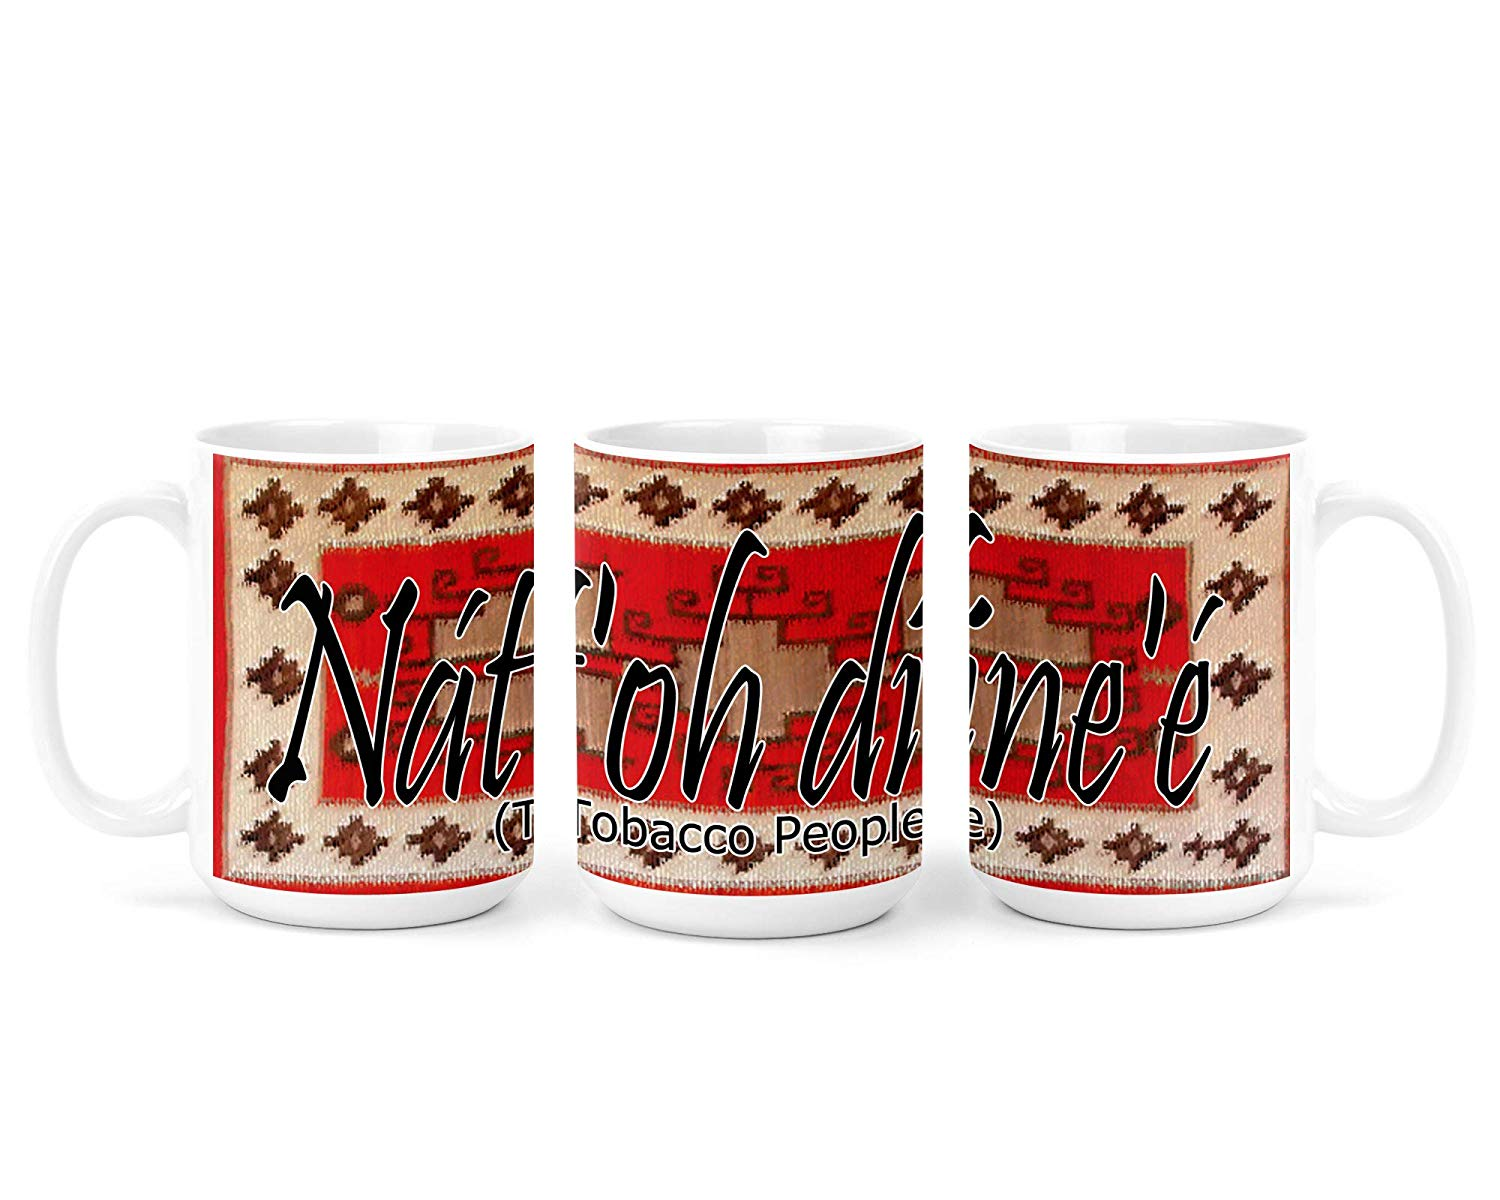 Amazoncom Natoh Dinee Tobacco People Navajo Clan with Red 1500x1200